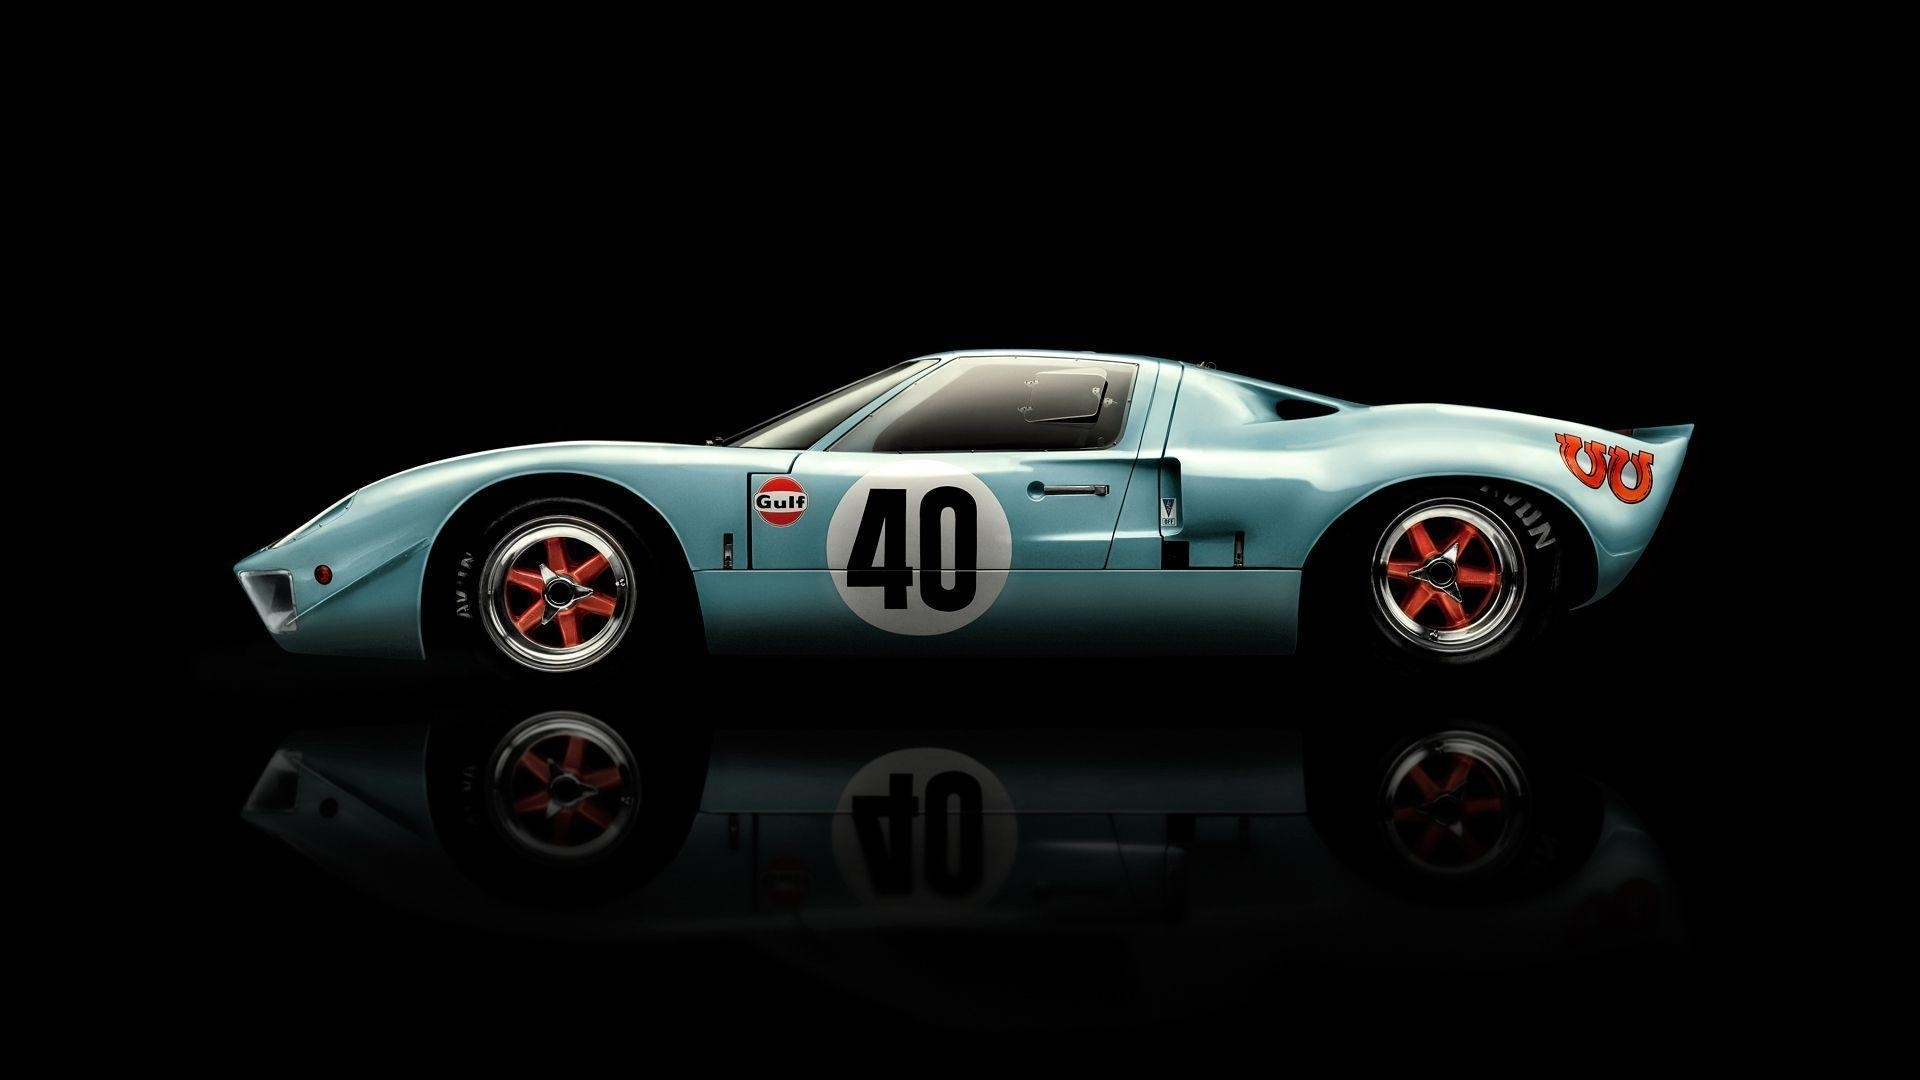 ford gt40 wallpapers - wallpaper cave